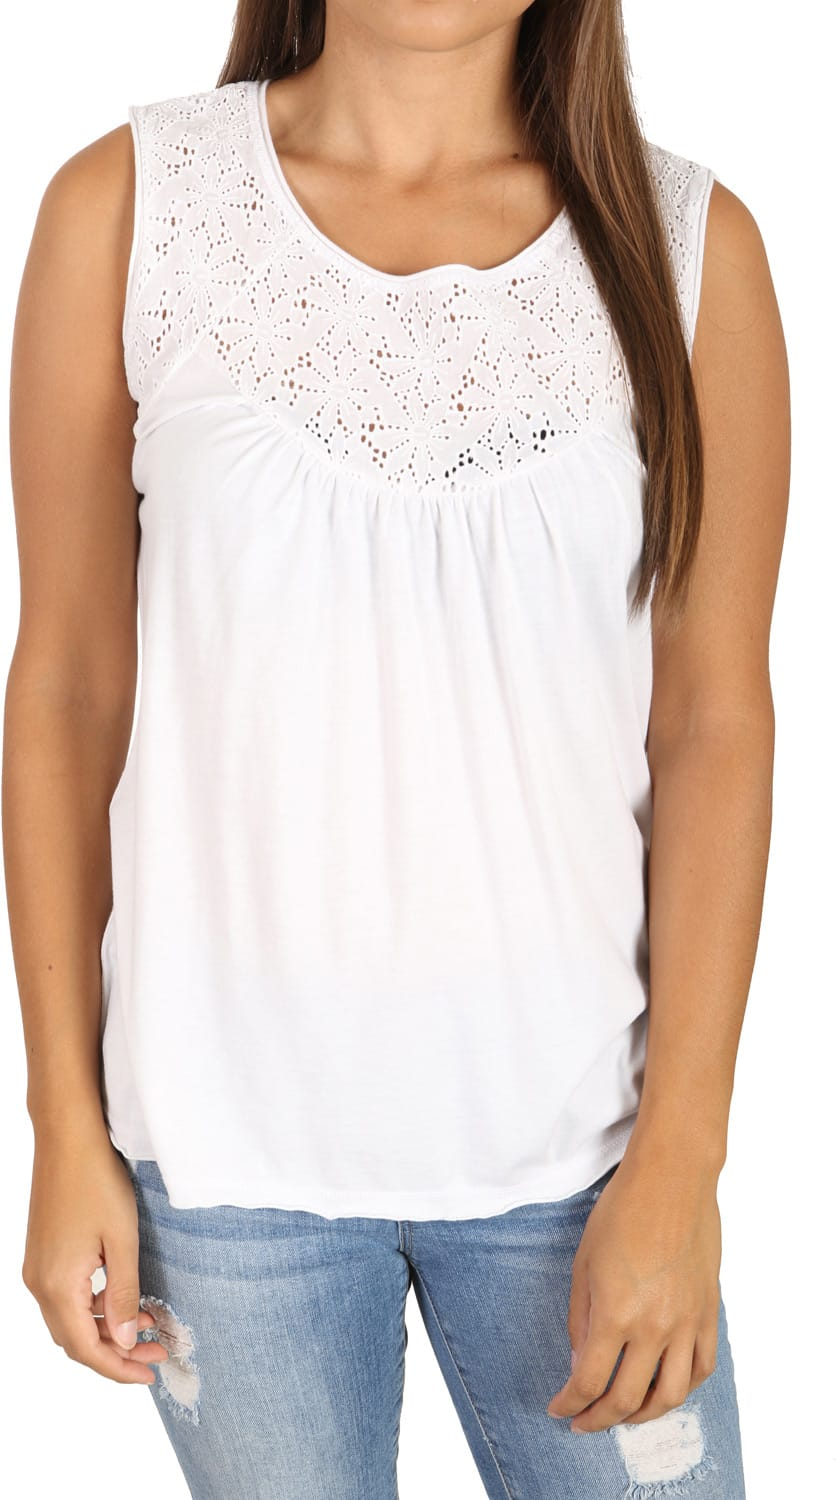 Shop for White Sierra Sugarloaf Tank White - Women's